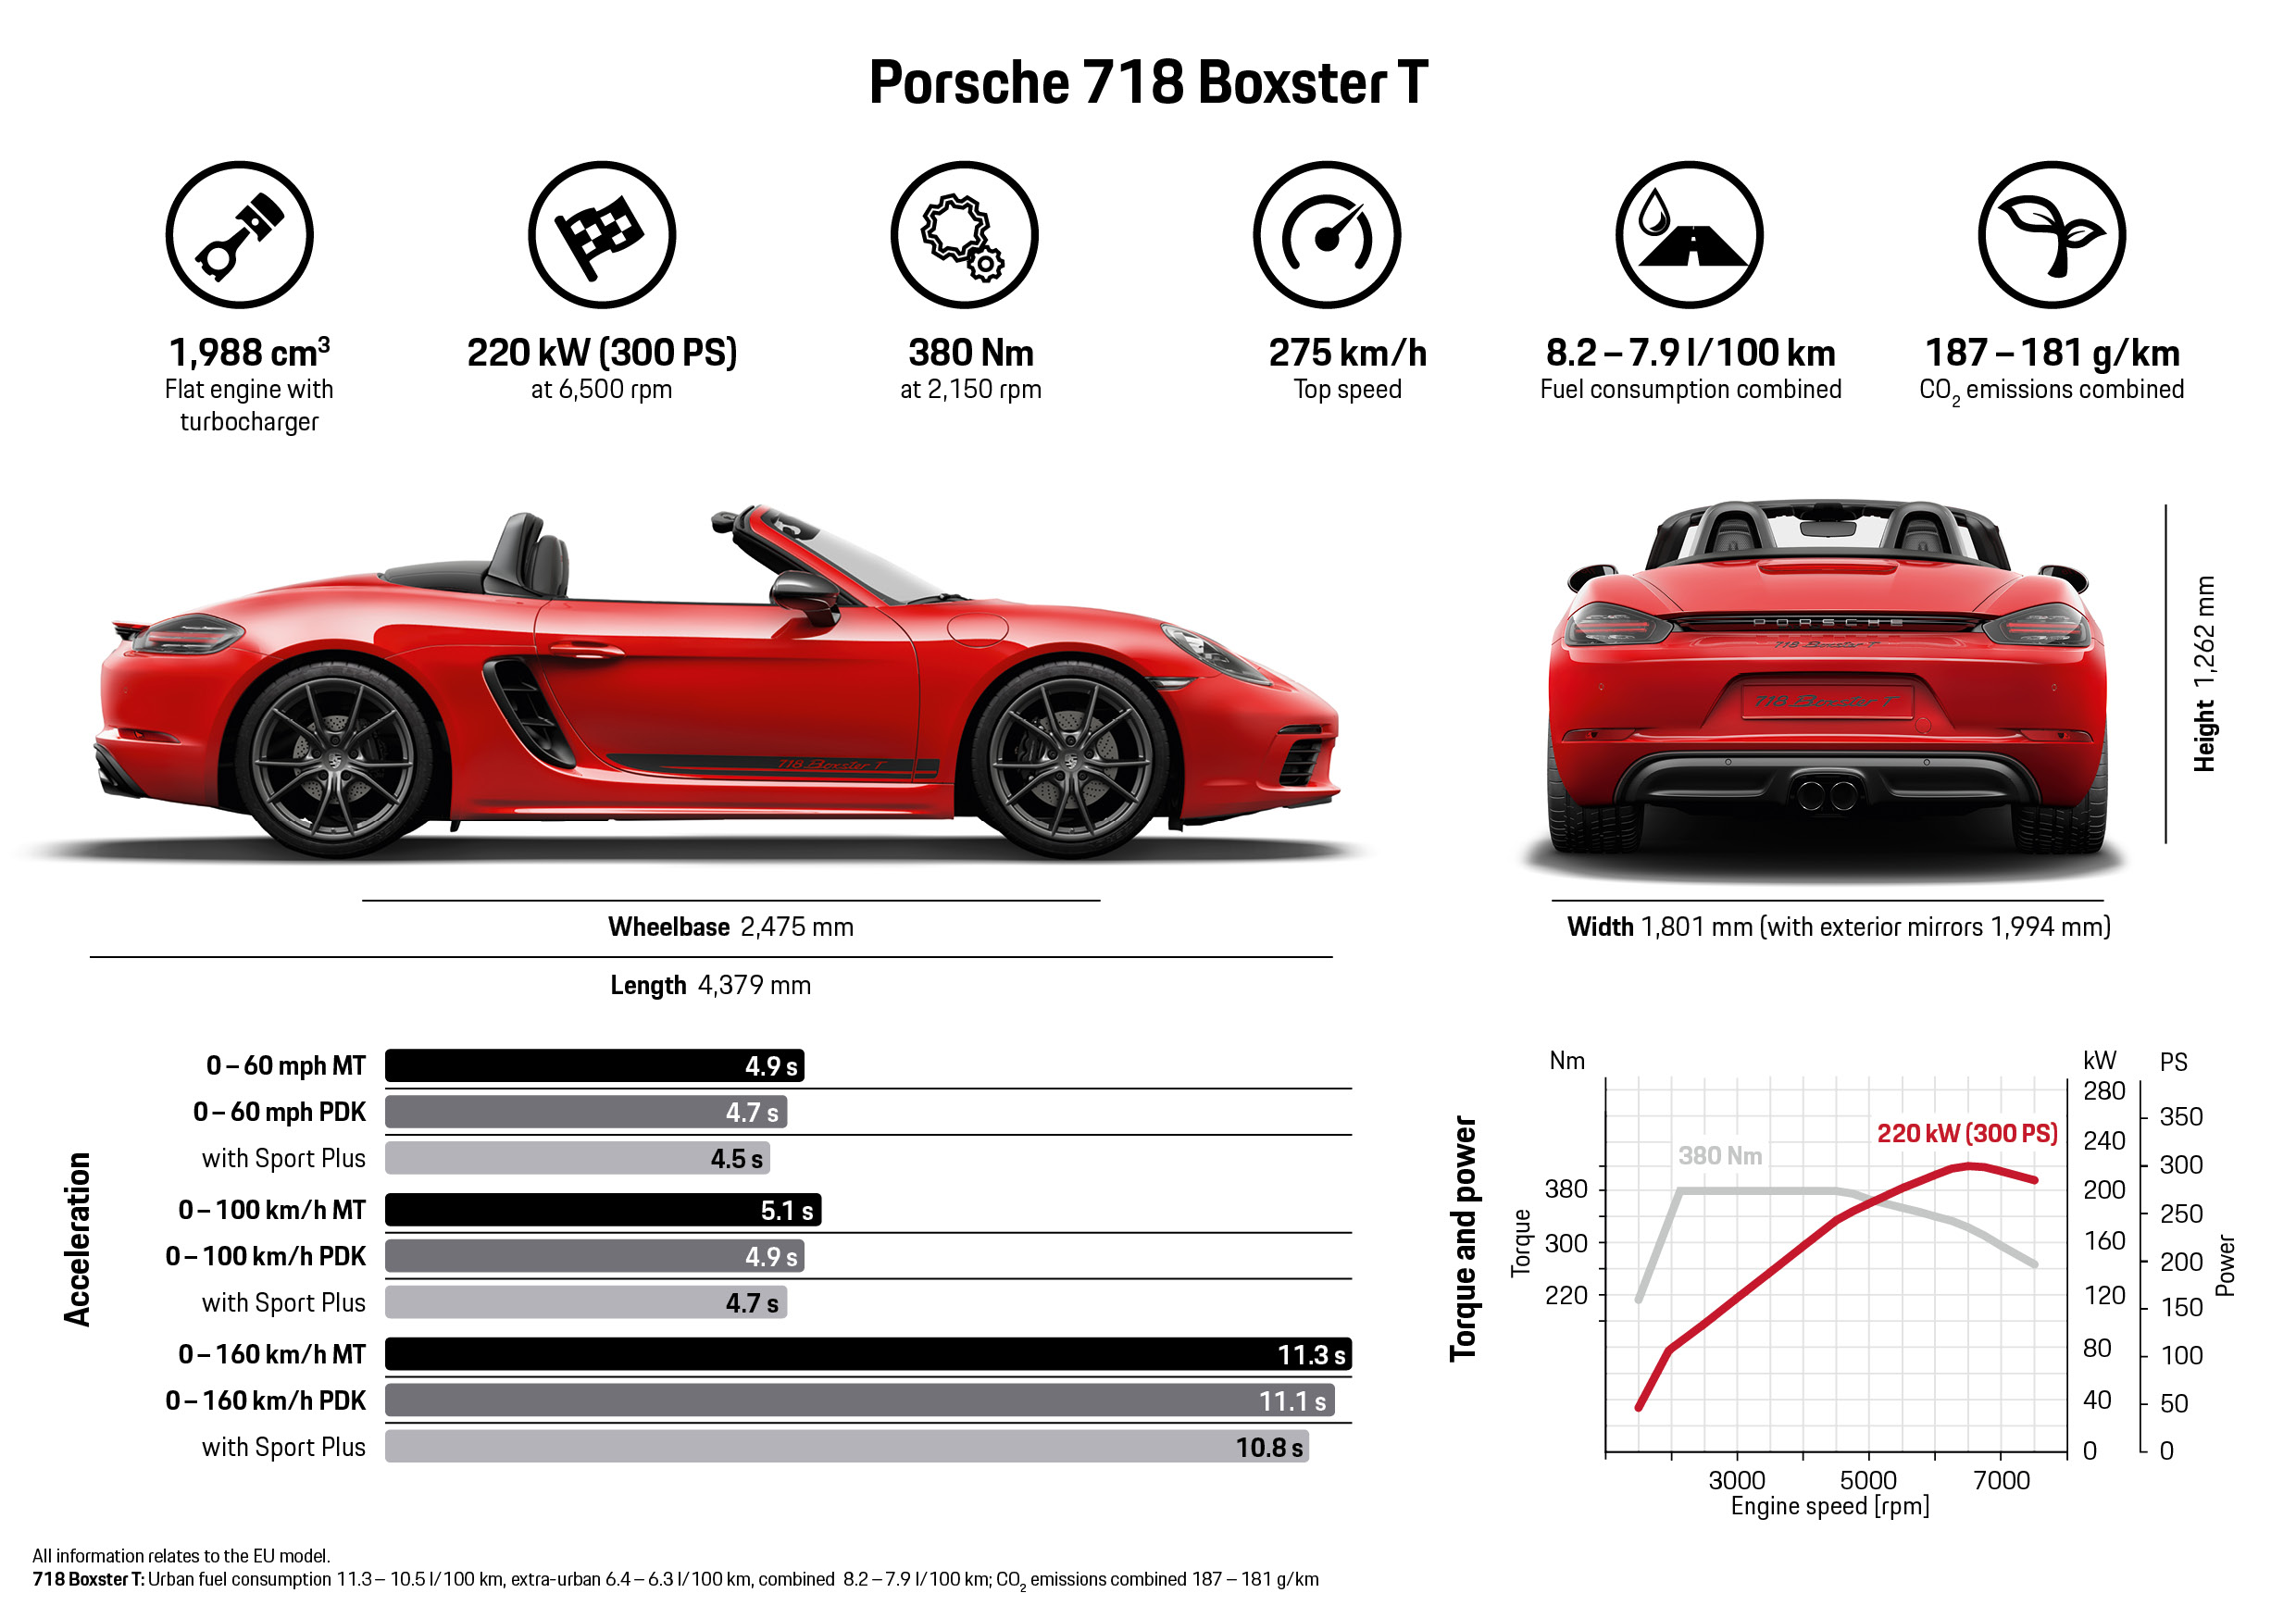 2019 Porsche 718 Boxster T 528388 Best Quality Free High